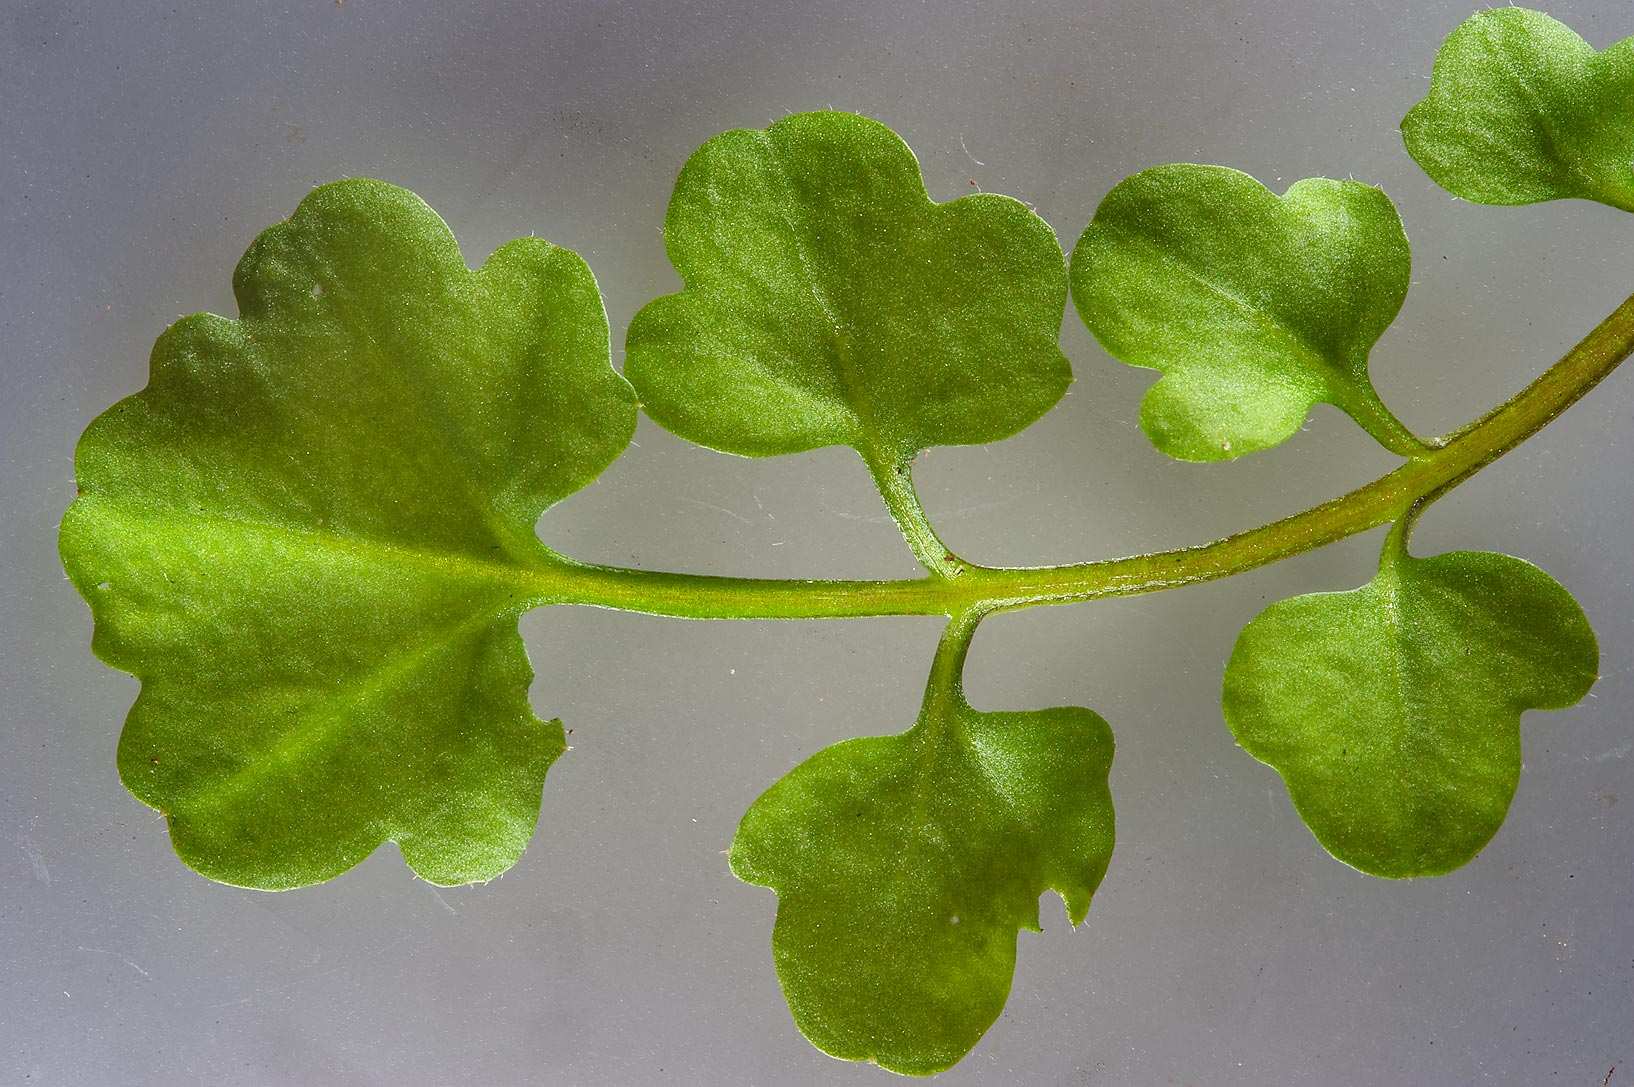 Leaf of Hairy bittercress (Cardamine hirsuta) on...Hotel in West Bay. Doha, Qatar